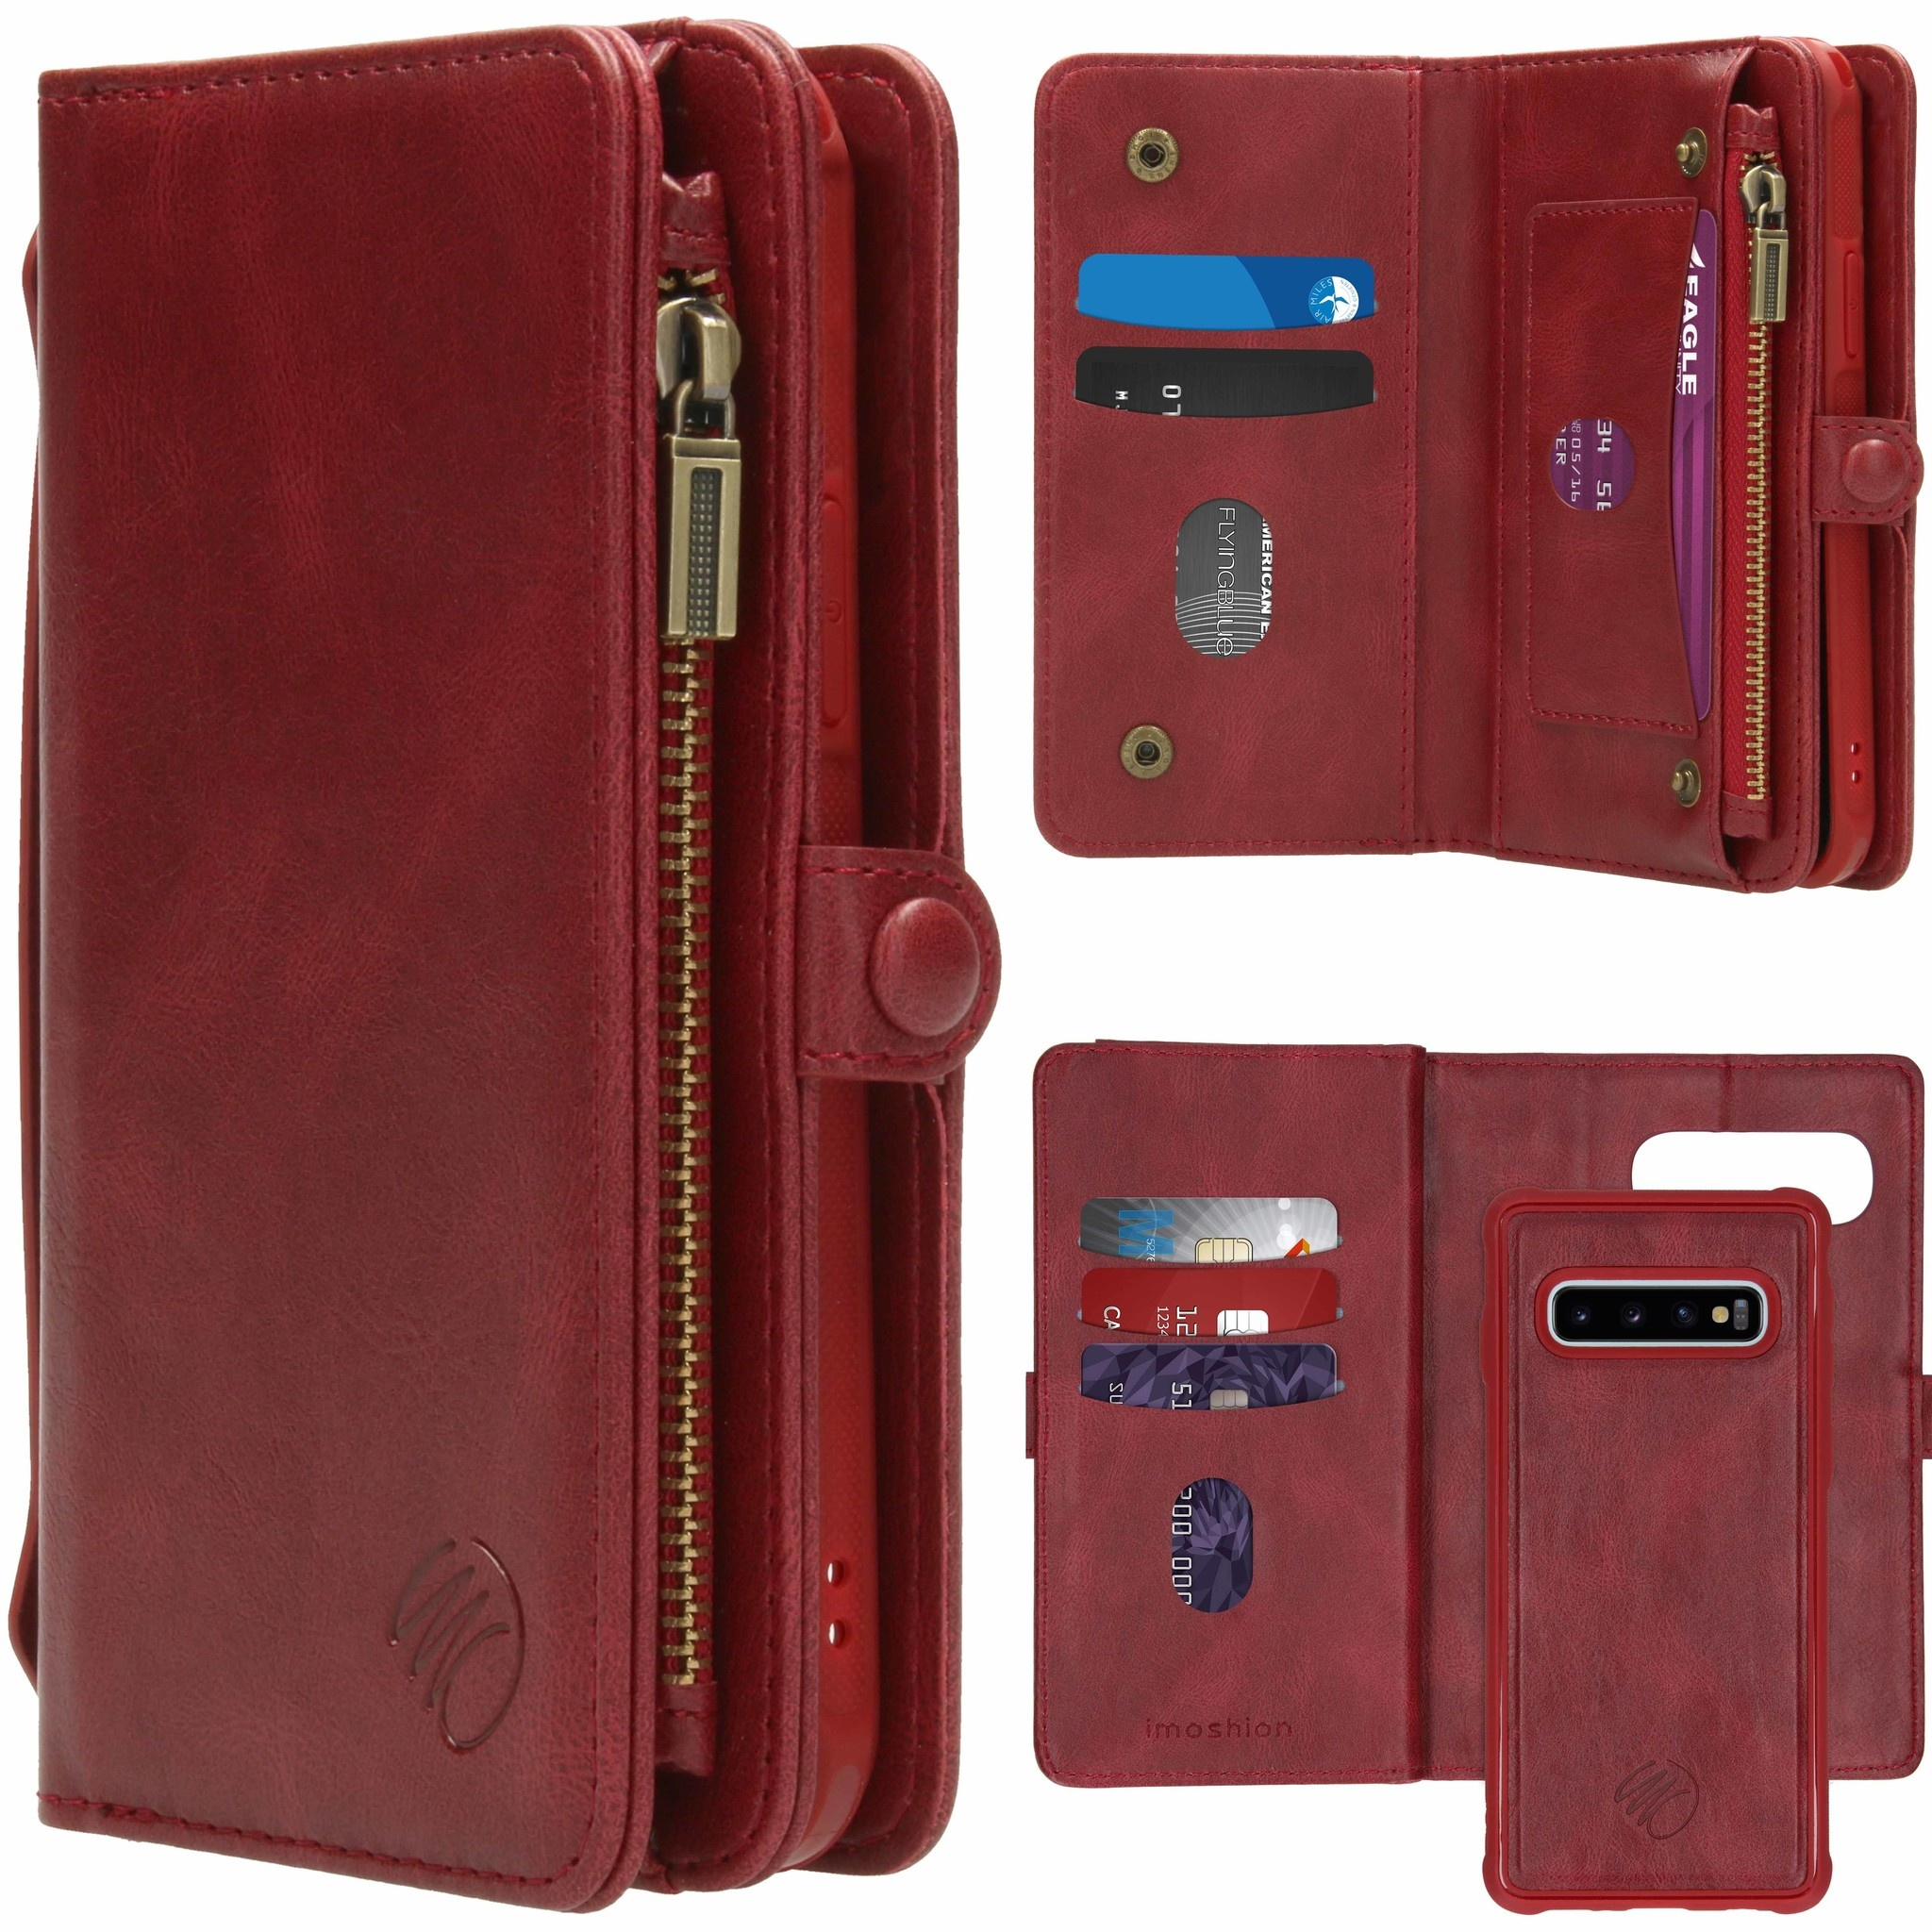 iMoshion 2-in-1 Wallet Booktype Samsung Galaxy S10 - Rood